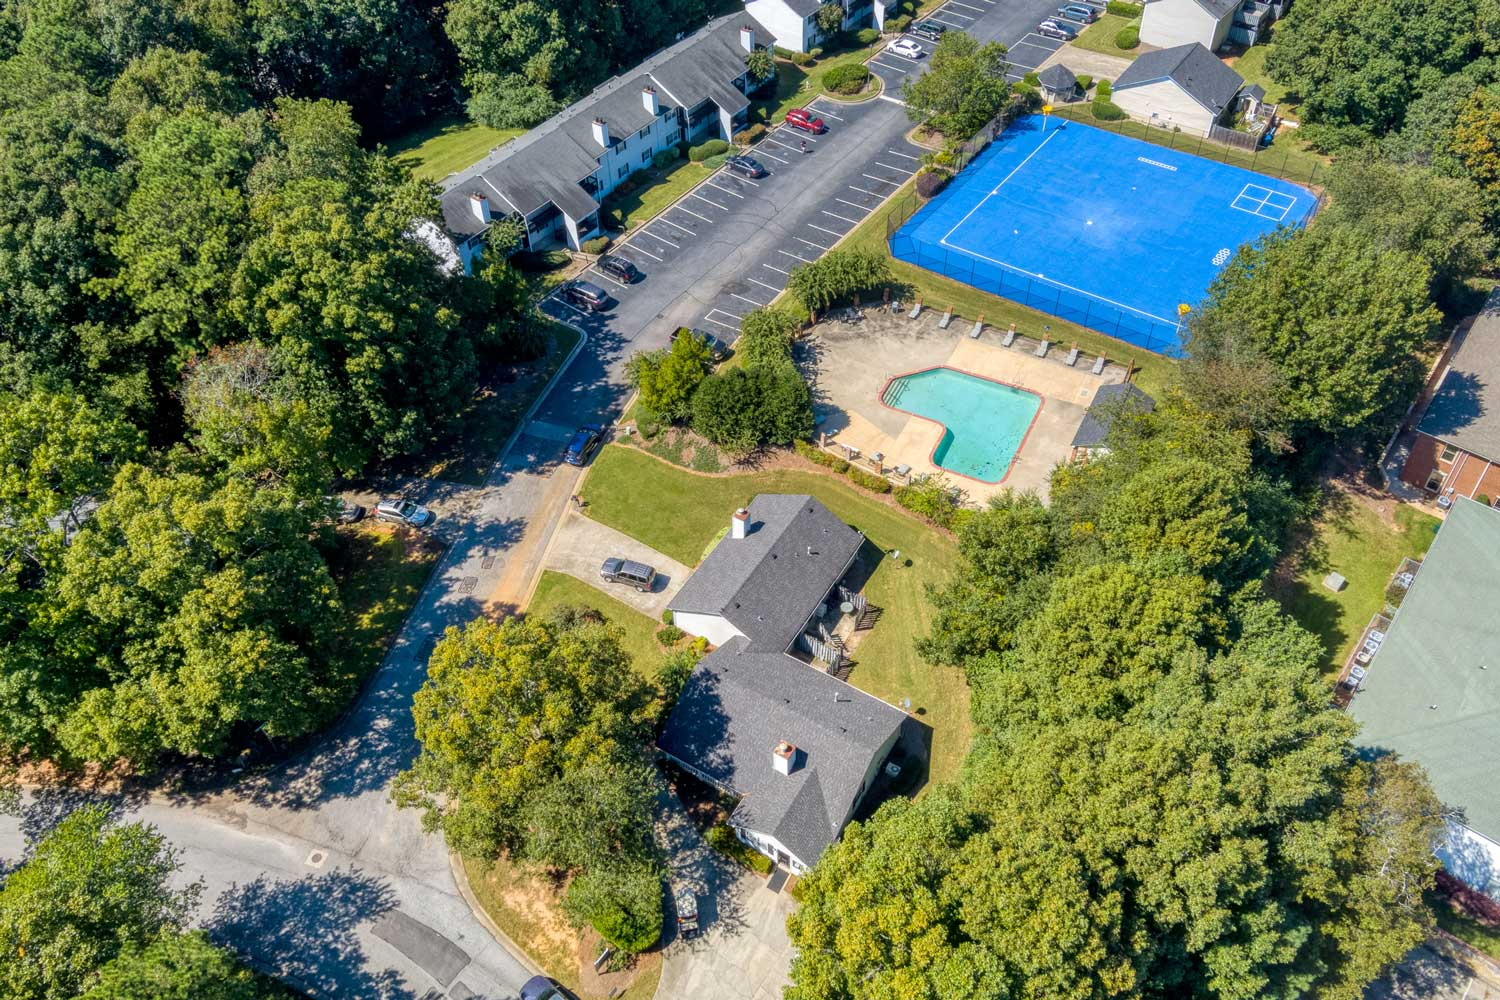 Aerial View at Tall Oaks Apartments and Villas in Conyers, GA